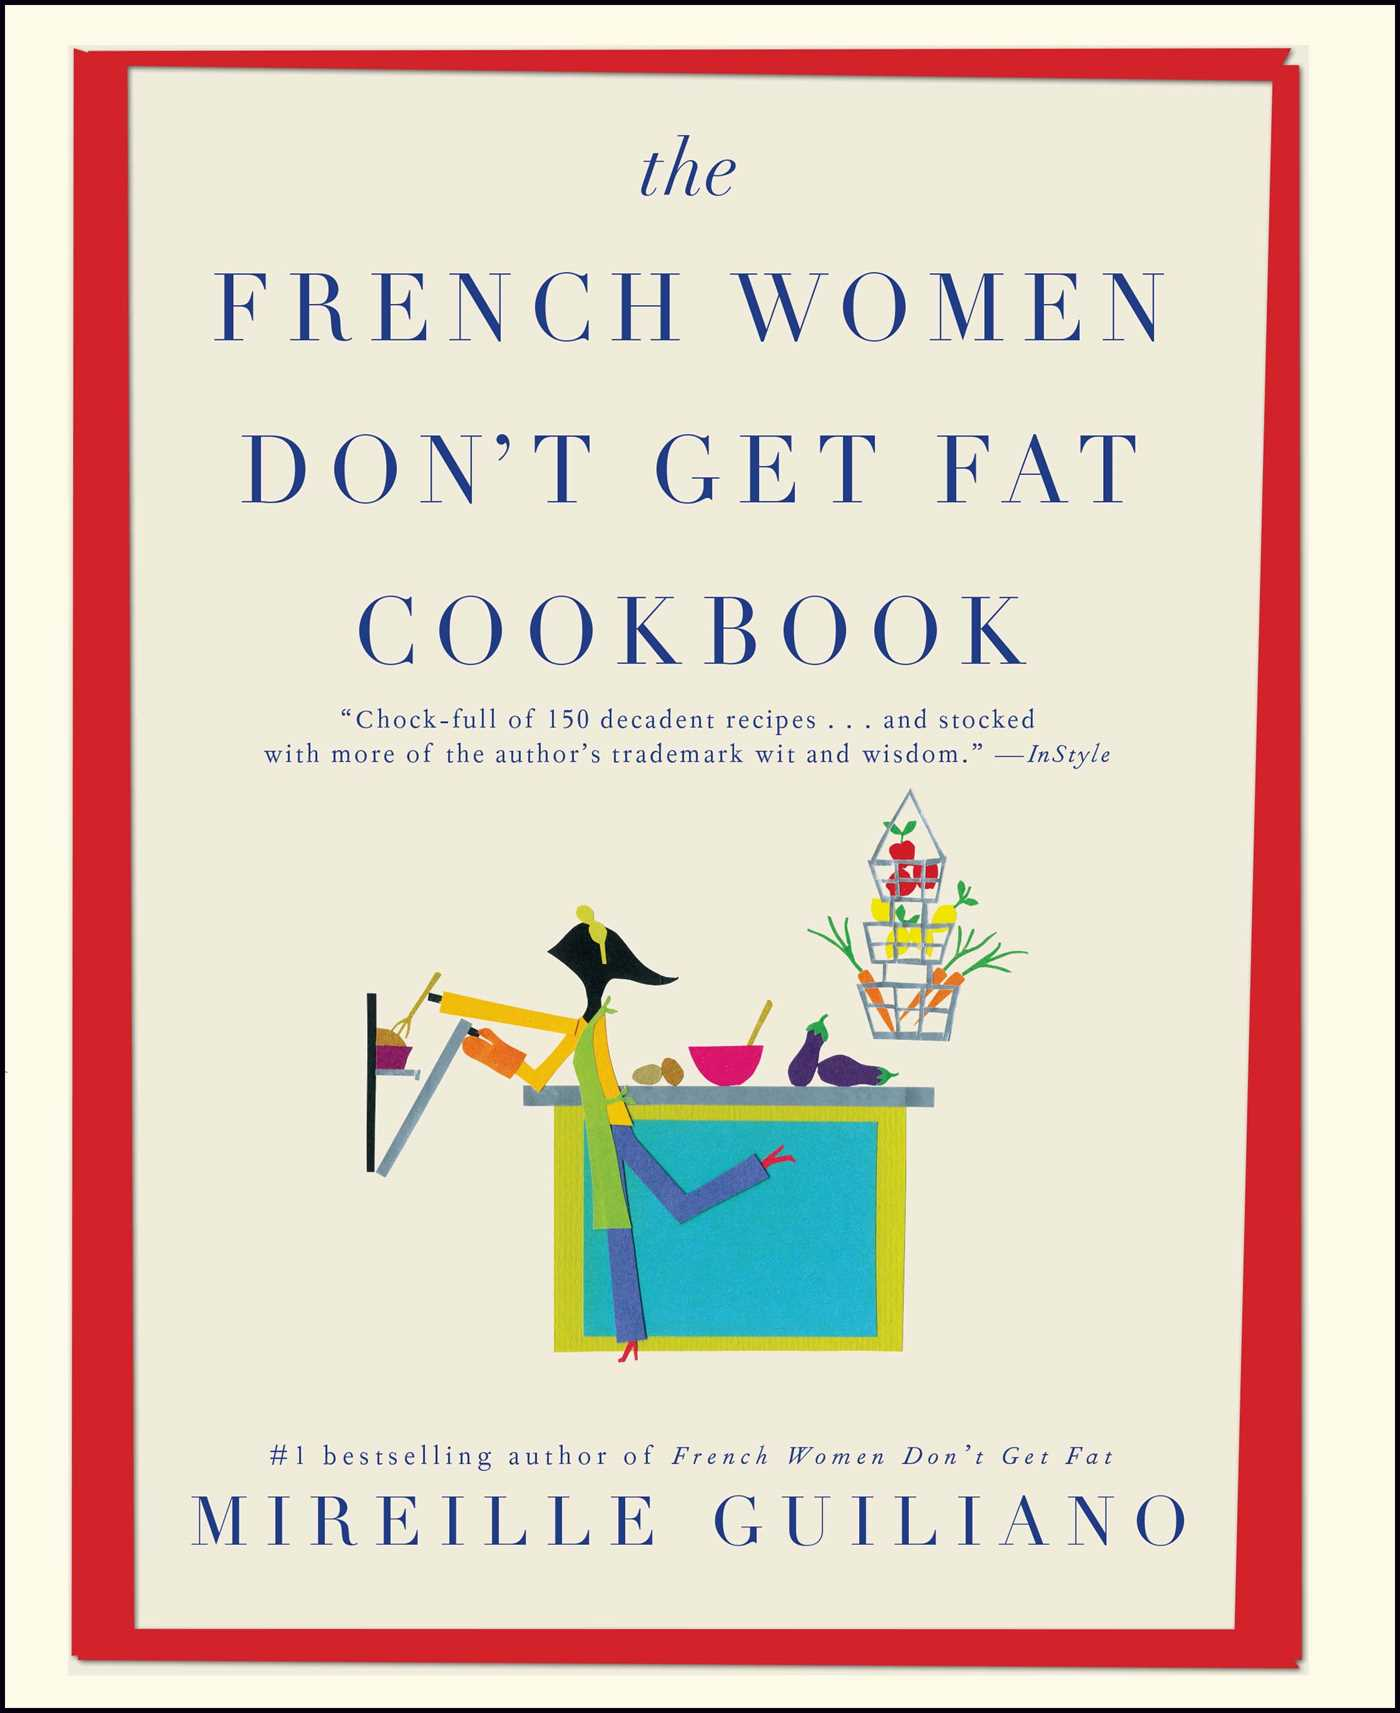 From what to get fat Products from which to get fat. Why French women do not get fat